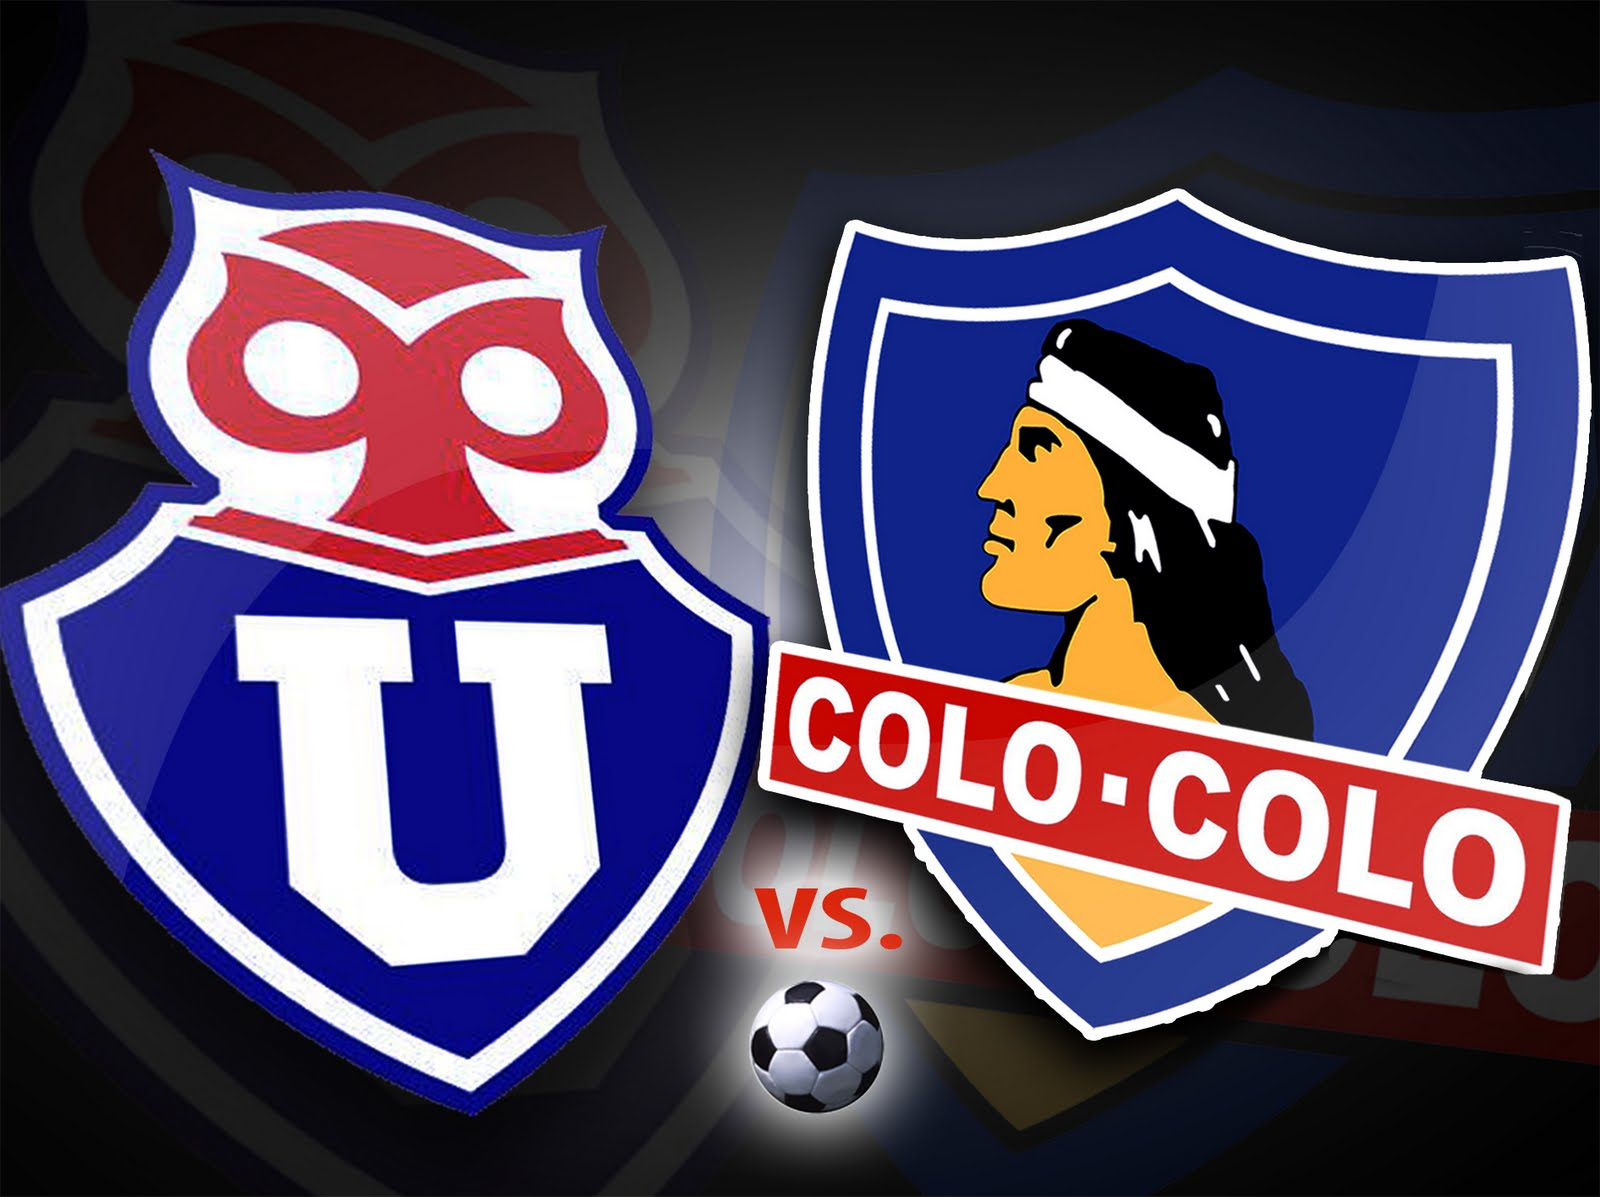 Partido  Universidad De Chile Vs Colo Colo